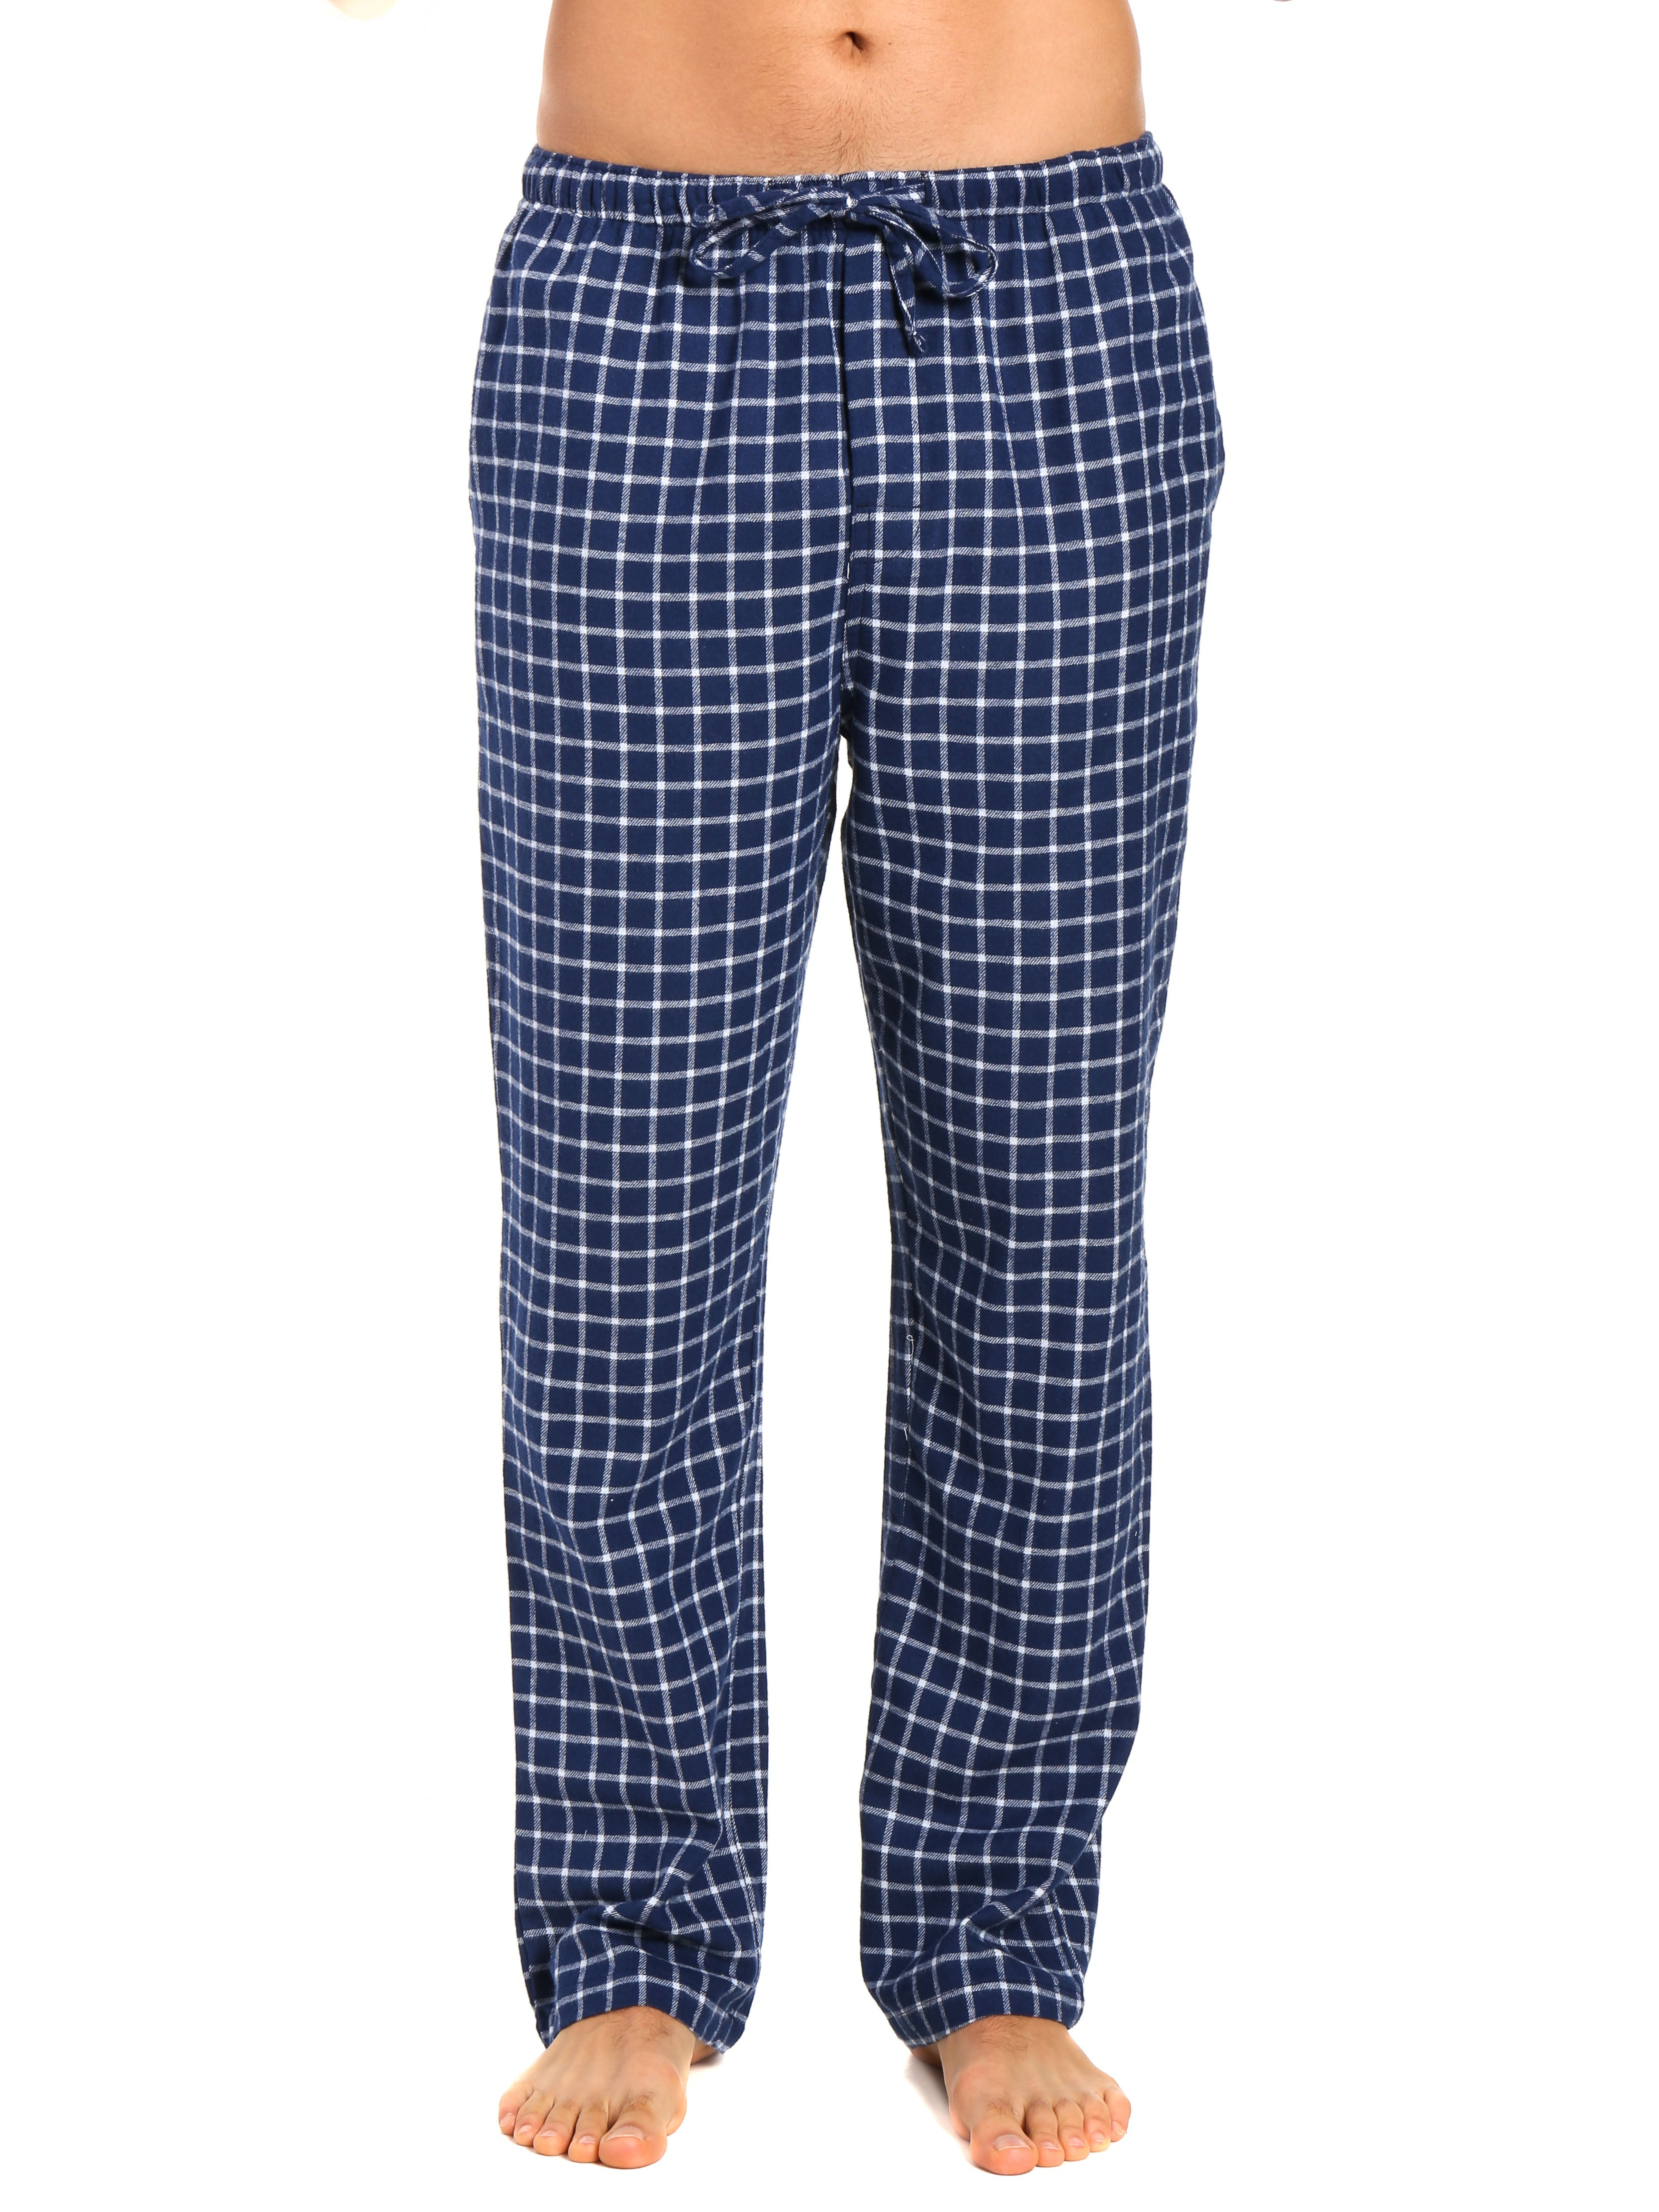 Men's 100% Cotton Flannel Lounge Pants - Checks Navy-Blue